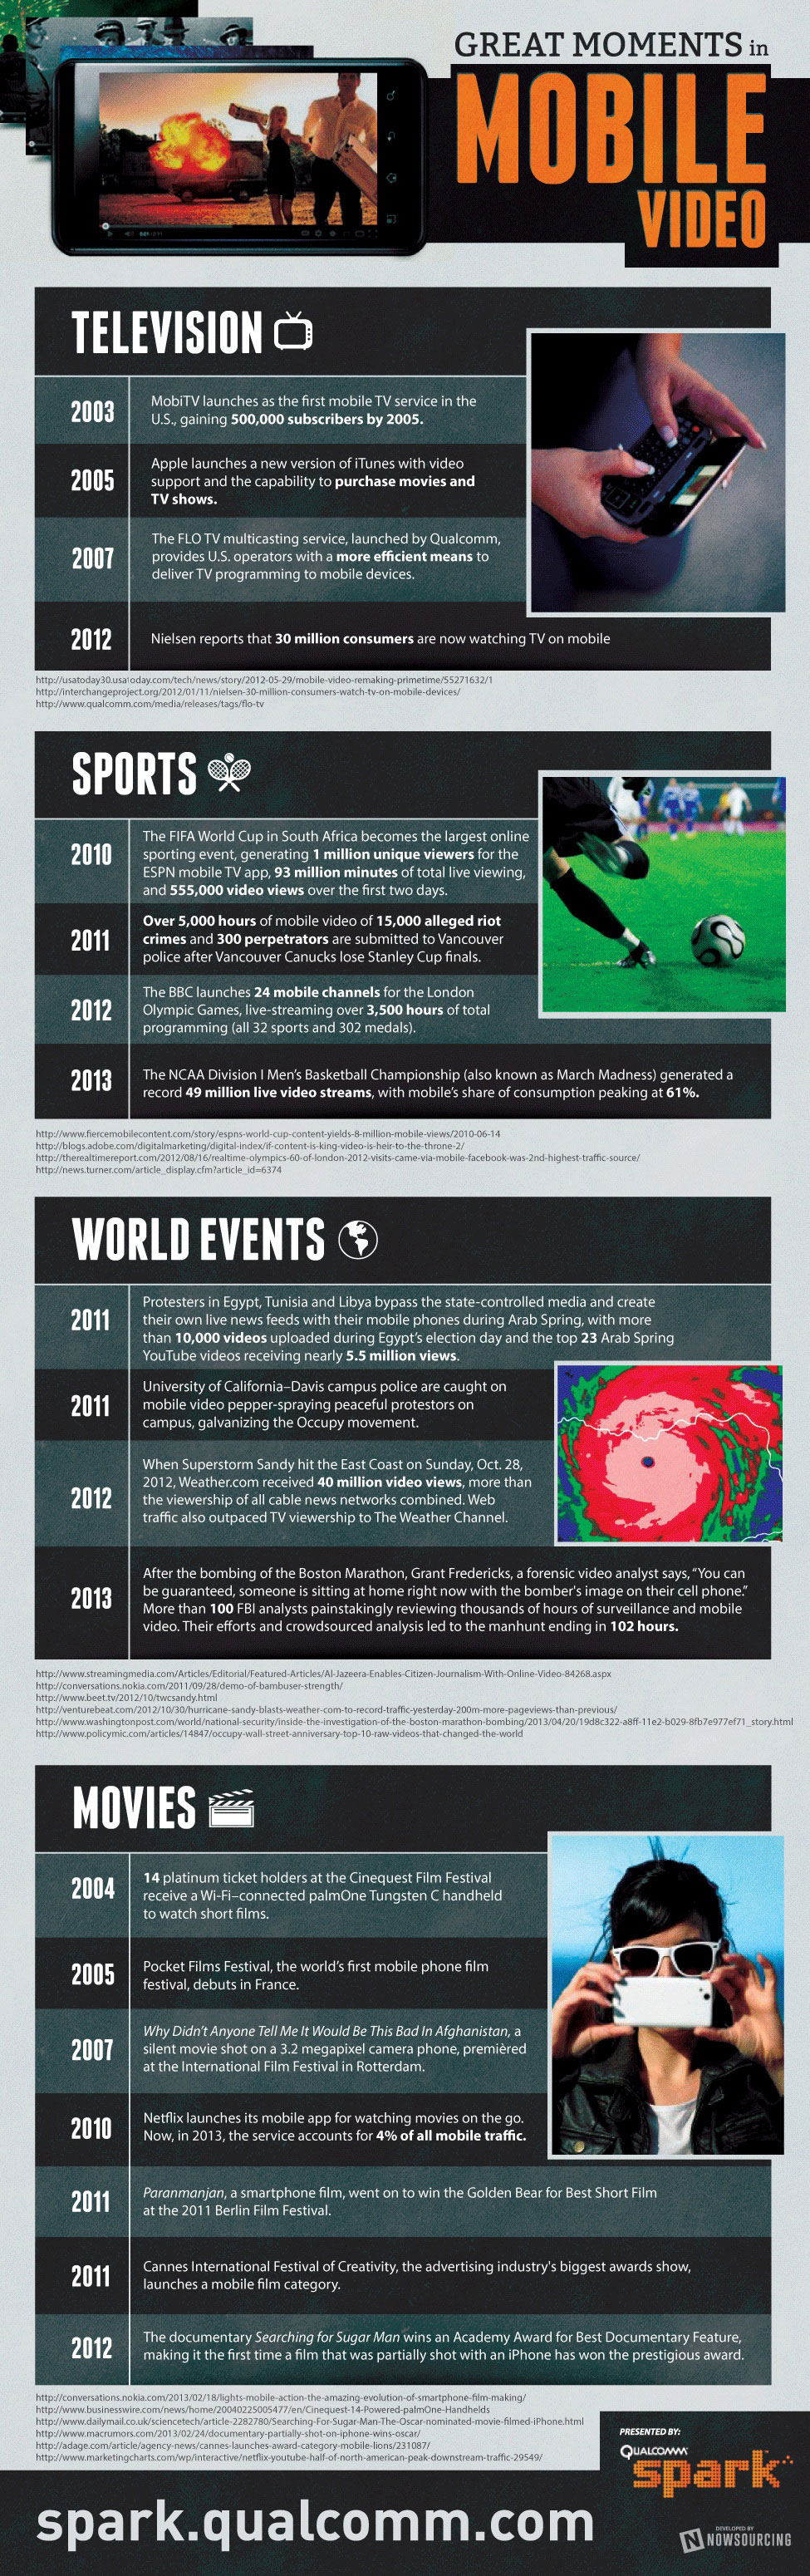 Great Moments Worth Remembering In Mobile Video History [Infographic]